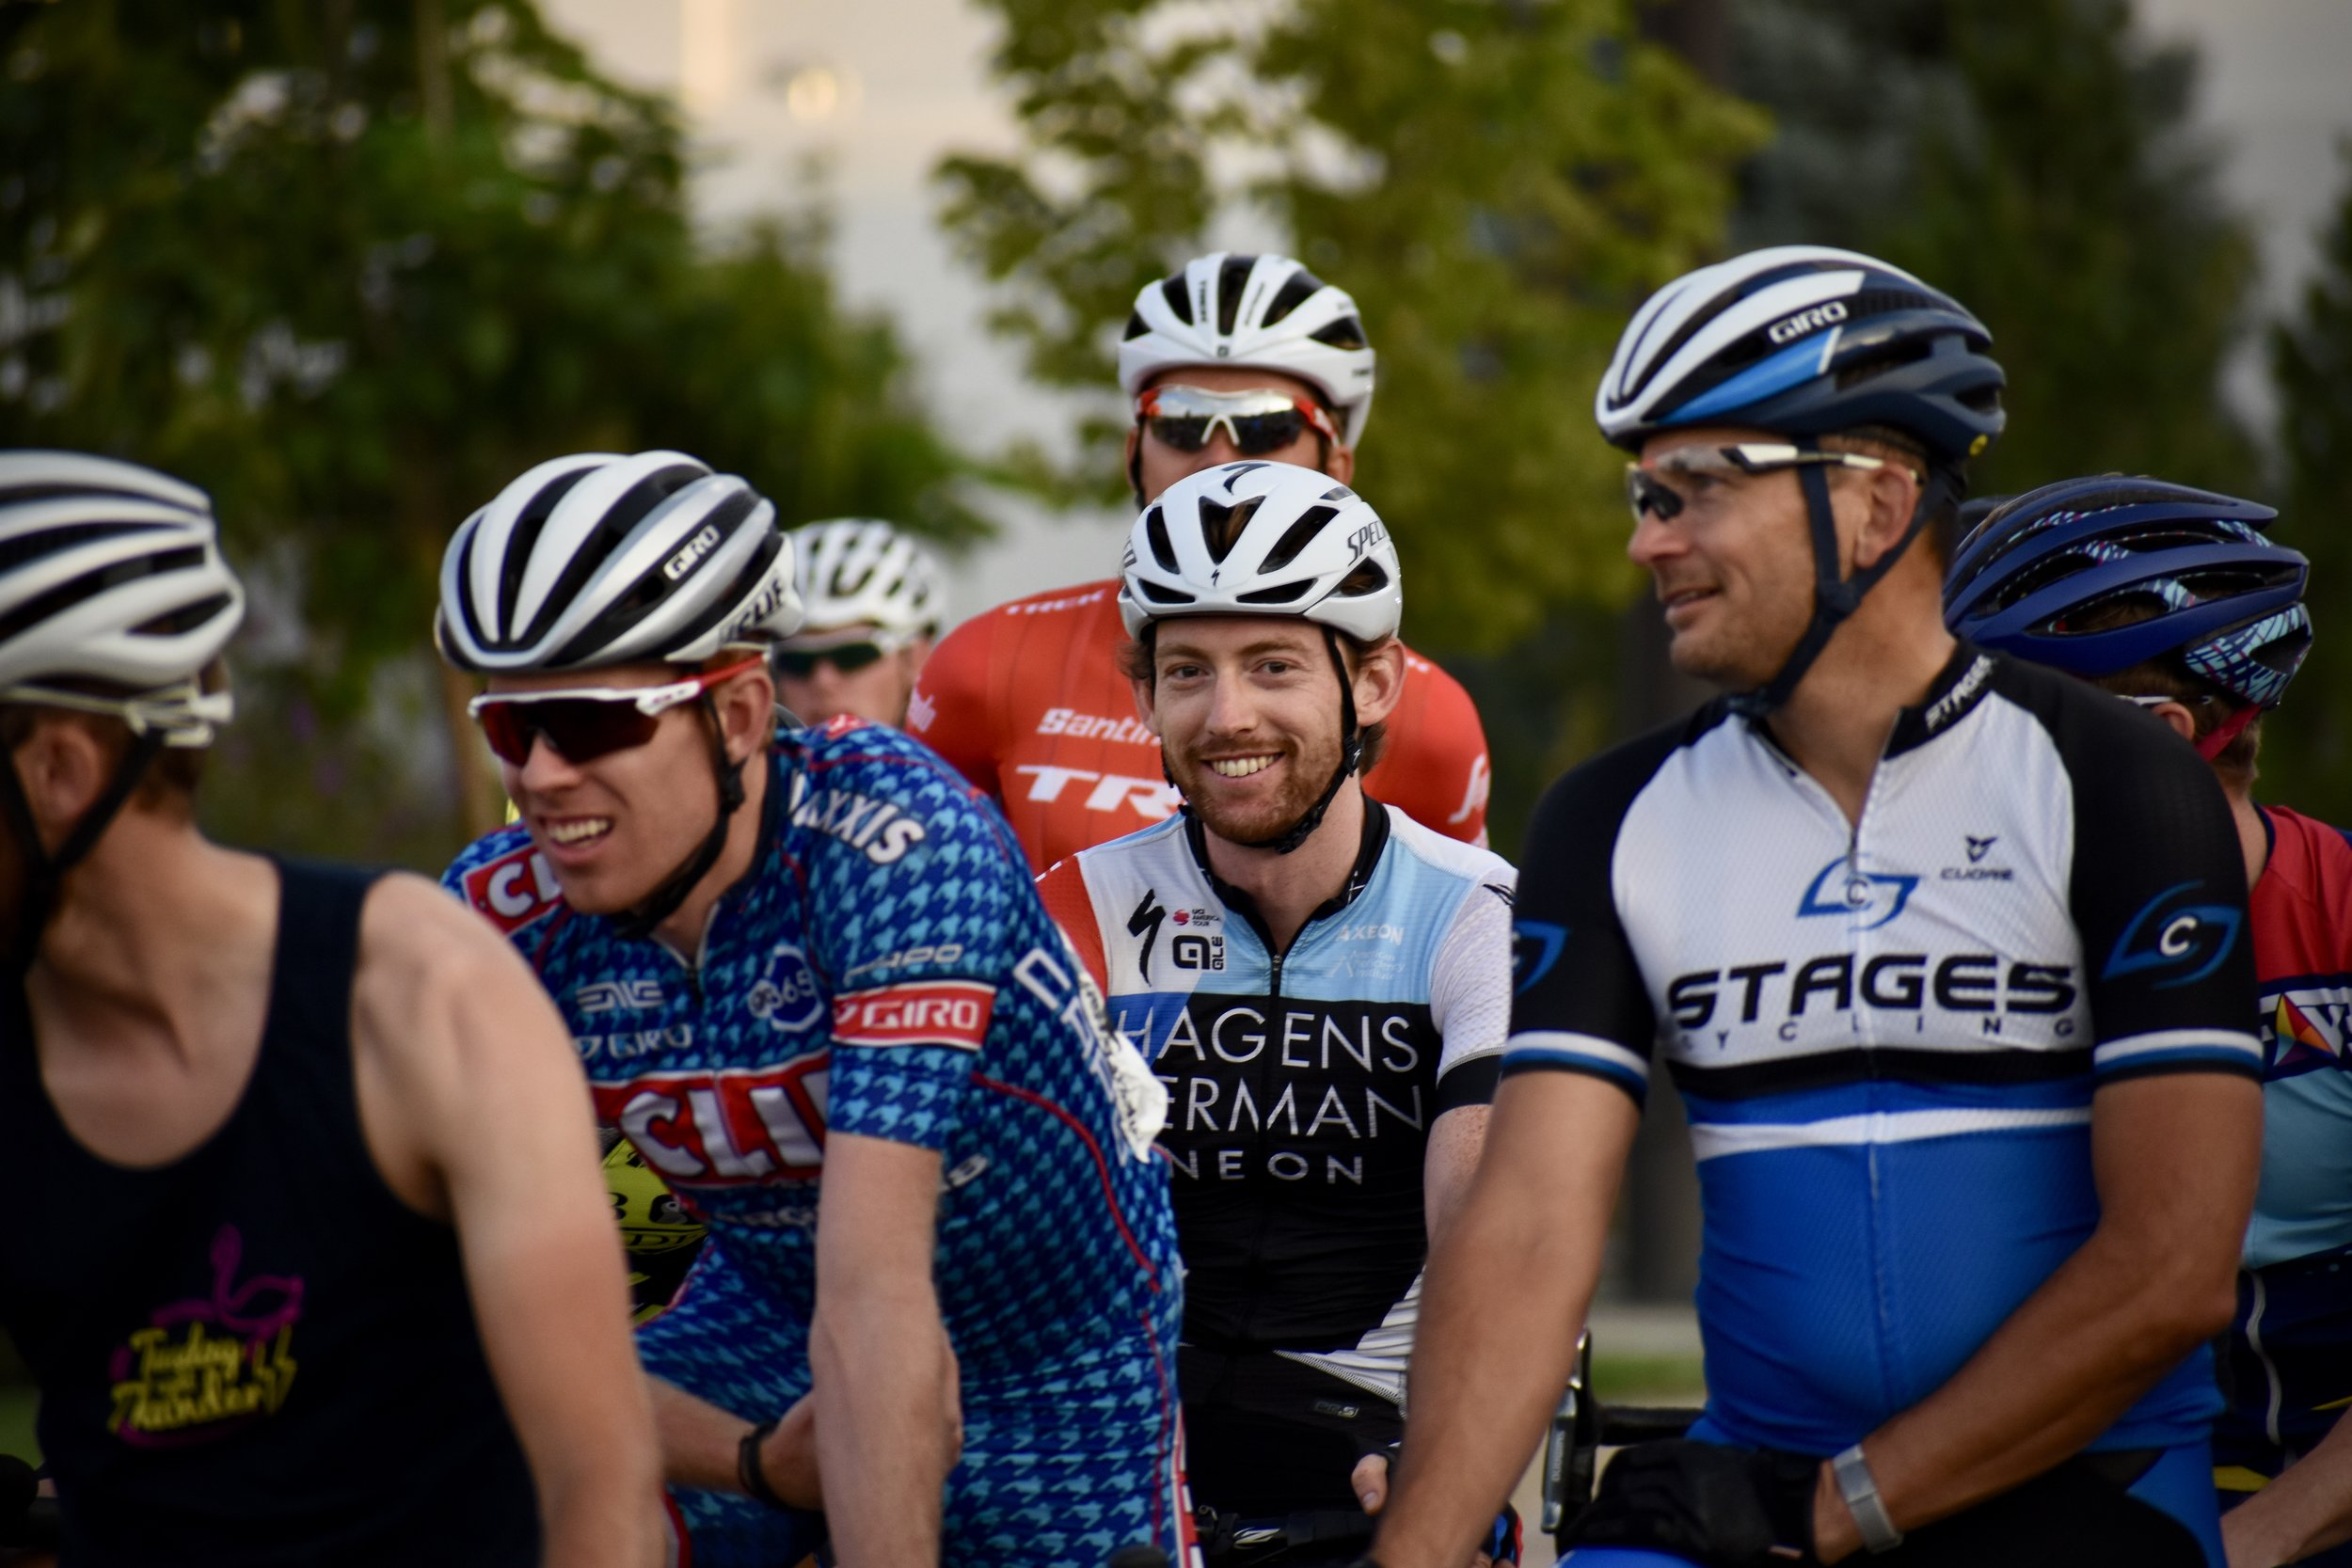 Be Part of Something Big - Sports are as much about community as they are about personal goals and fitness. With our help, you can train up for bunch rides, charity races, and other events in your spare time, so you can spend more time outside doing the things you love with the people you care about.